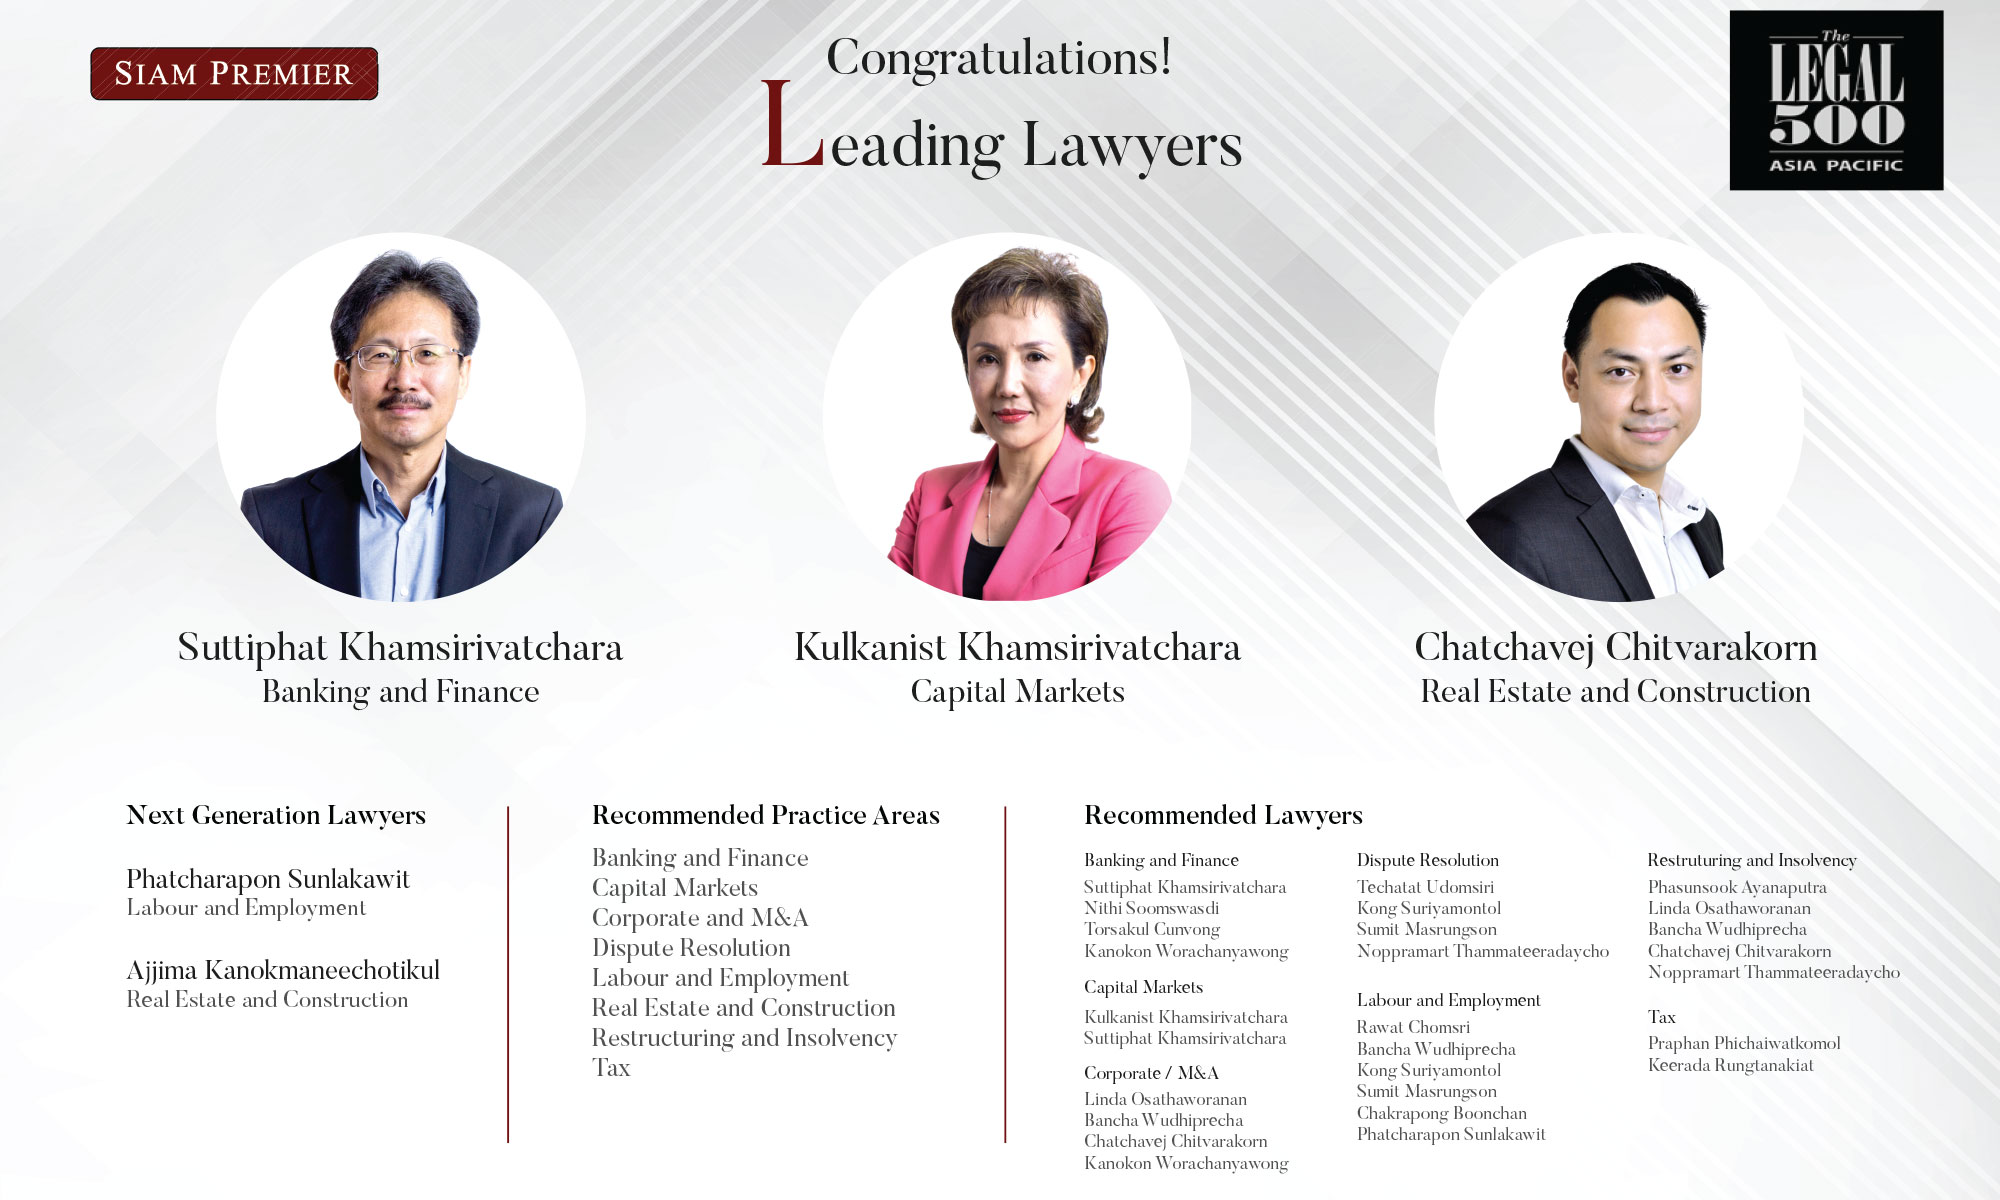 Congratulations Leading Lawyers in The Legal 500